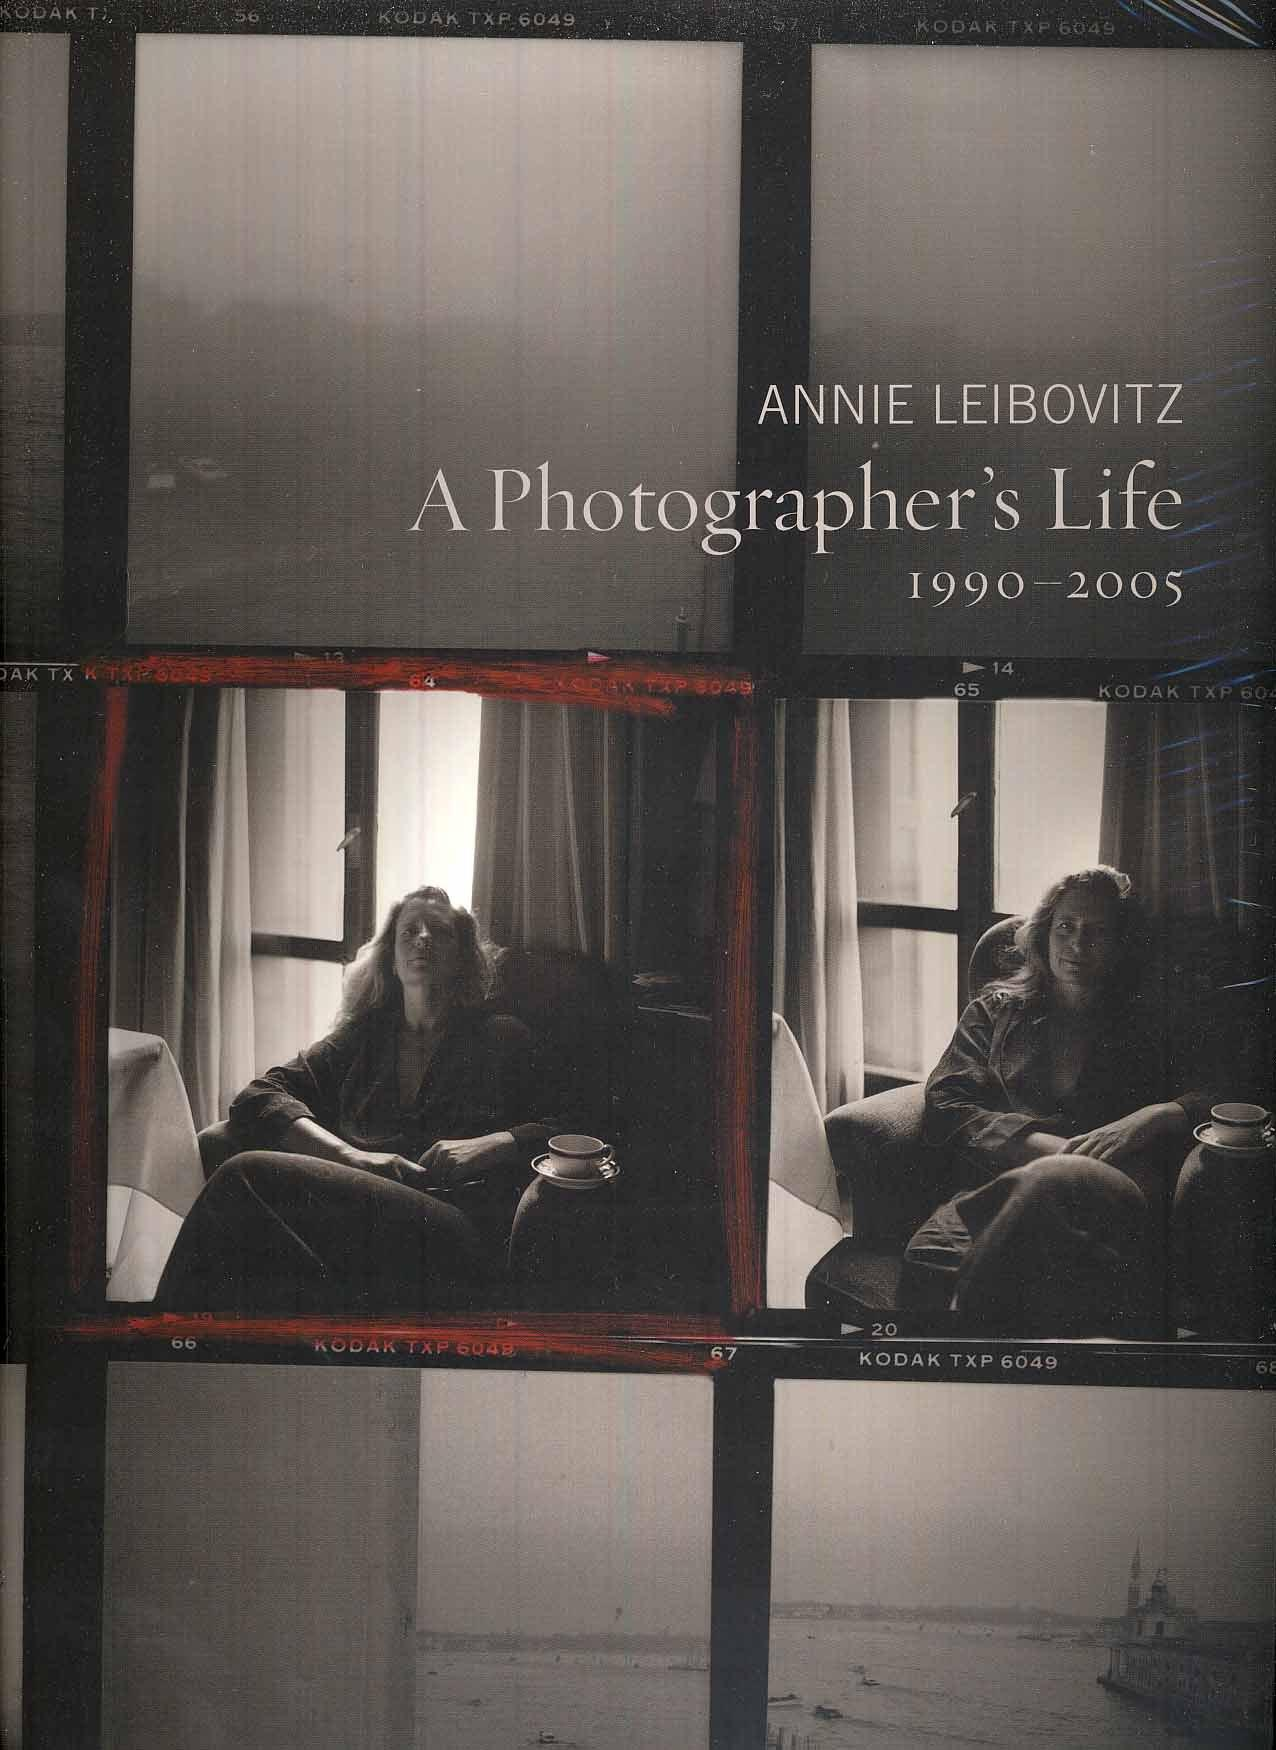 annie leibovitz biography and image sample Annie leibovitz has been one of the world's most sought-after photographers since the 70s, when her shots of rock stars gave us a vivid glimpse into a world few see.